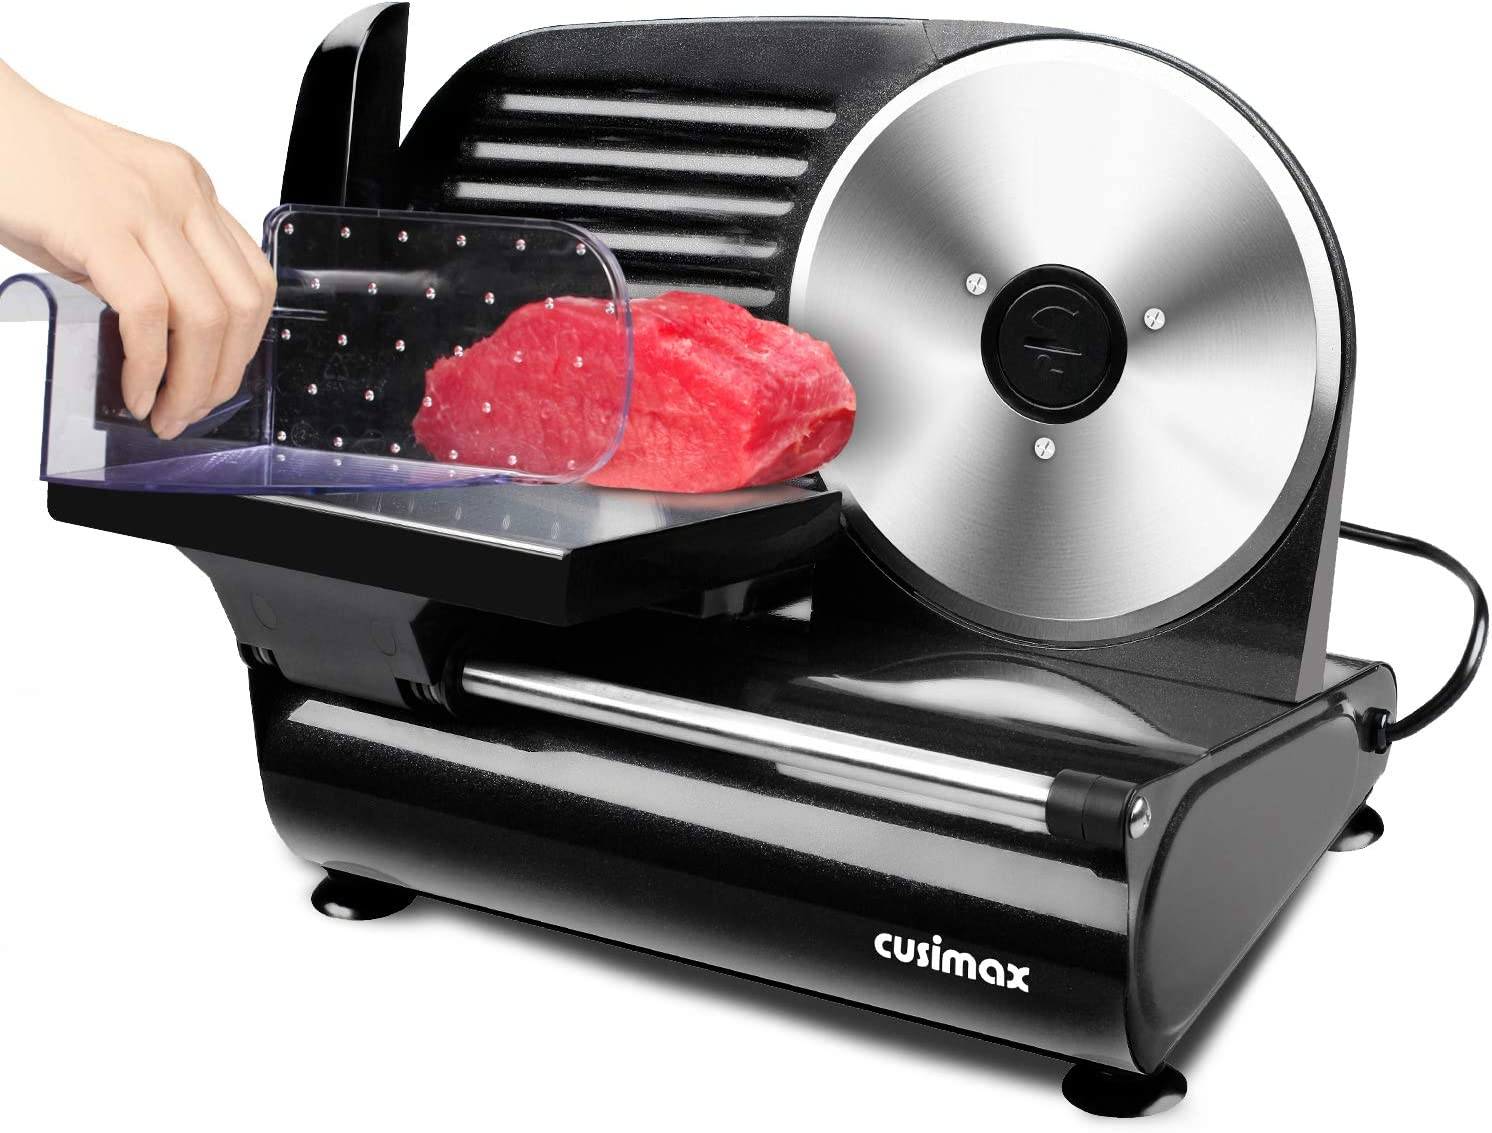 CUSIMAX Meat Slicer, Electric Deli Food Slicer with 7.5' Removable Stainless Steel Blade, Food Carriage & Pusher, Cheese Bread Fruit Vegetable Cutter, Adjustable Thickness Dial, Non-Slip Feet, Compact, Black